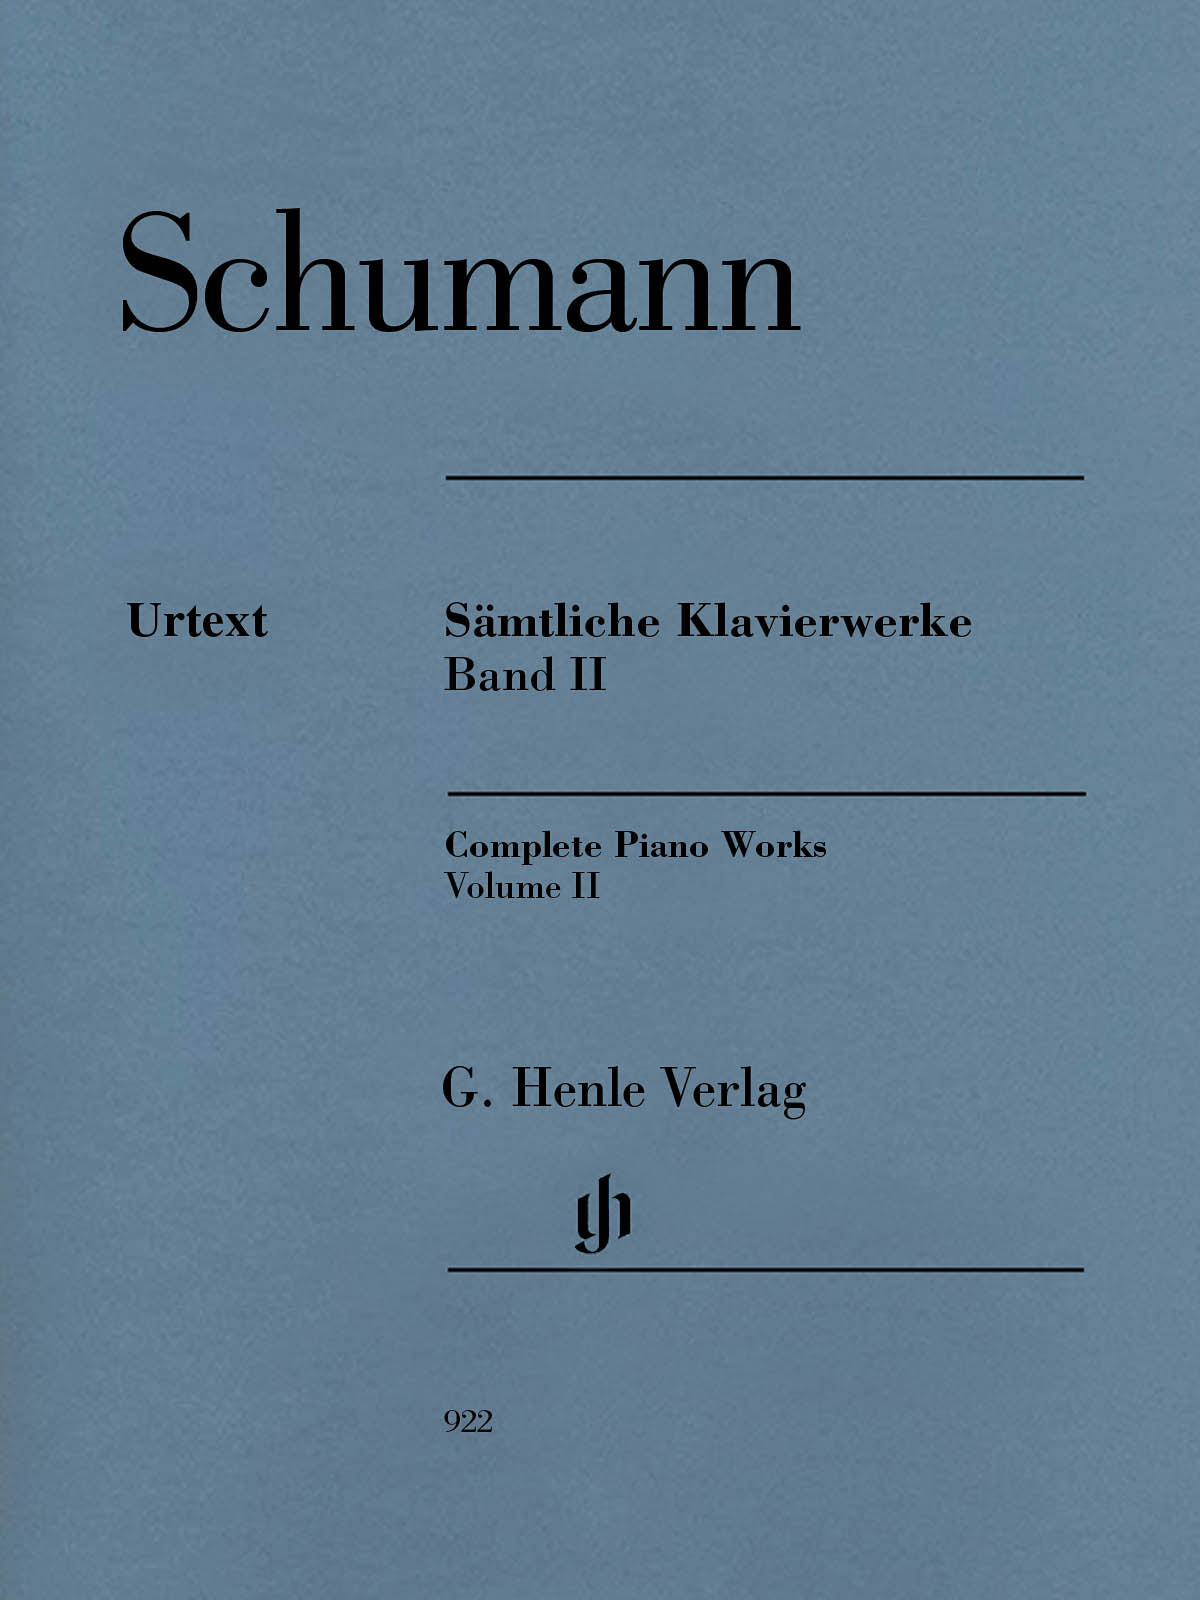 Schumann: Complete Piano Works - Volume 2